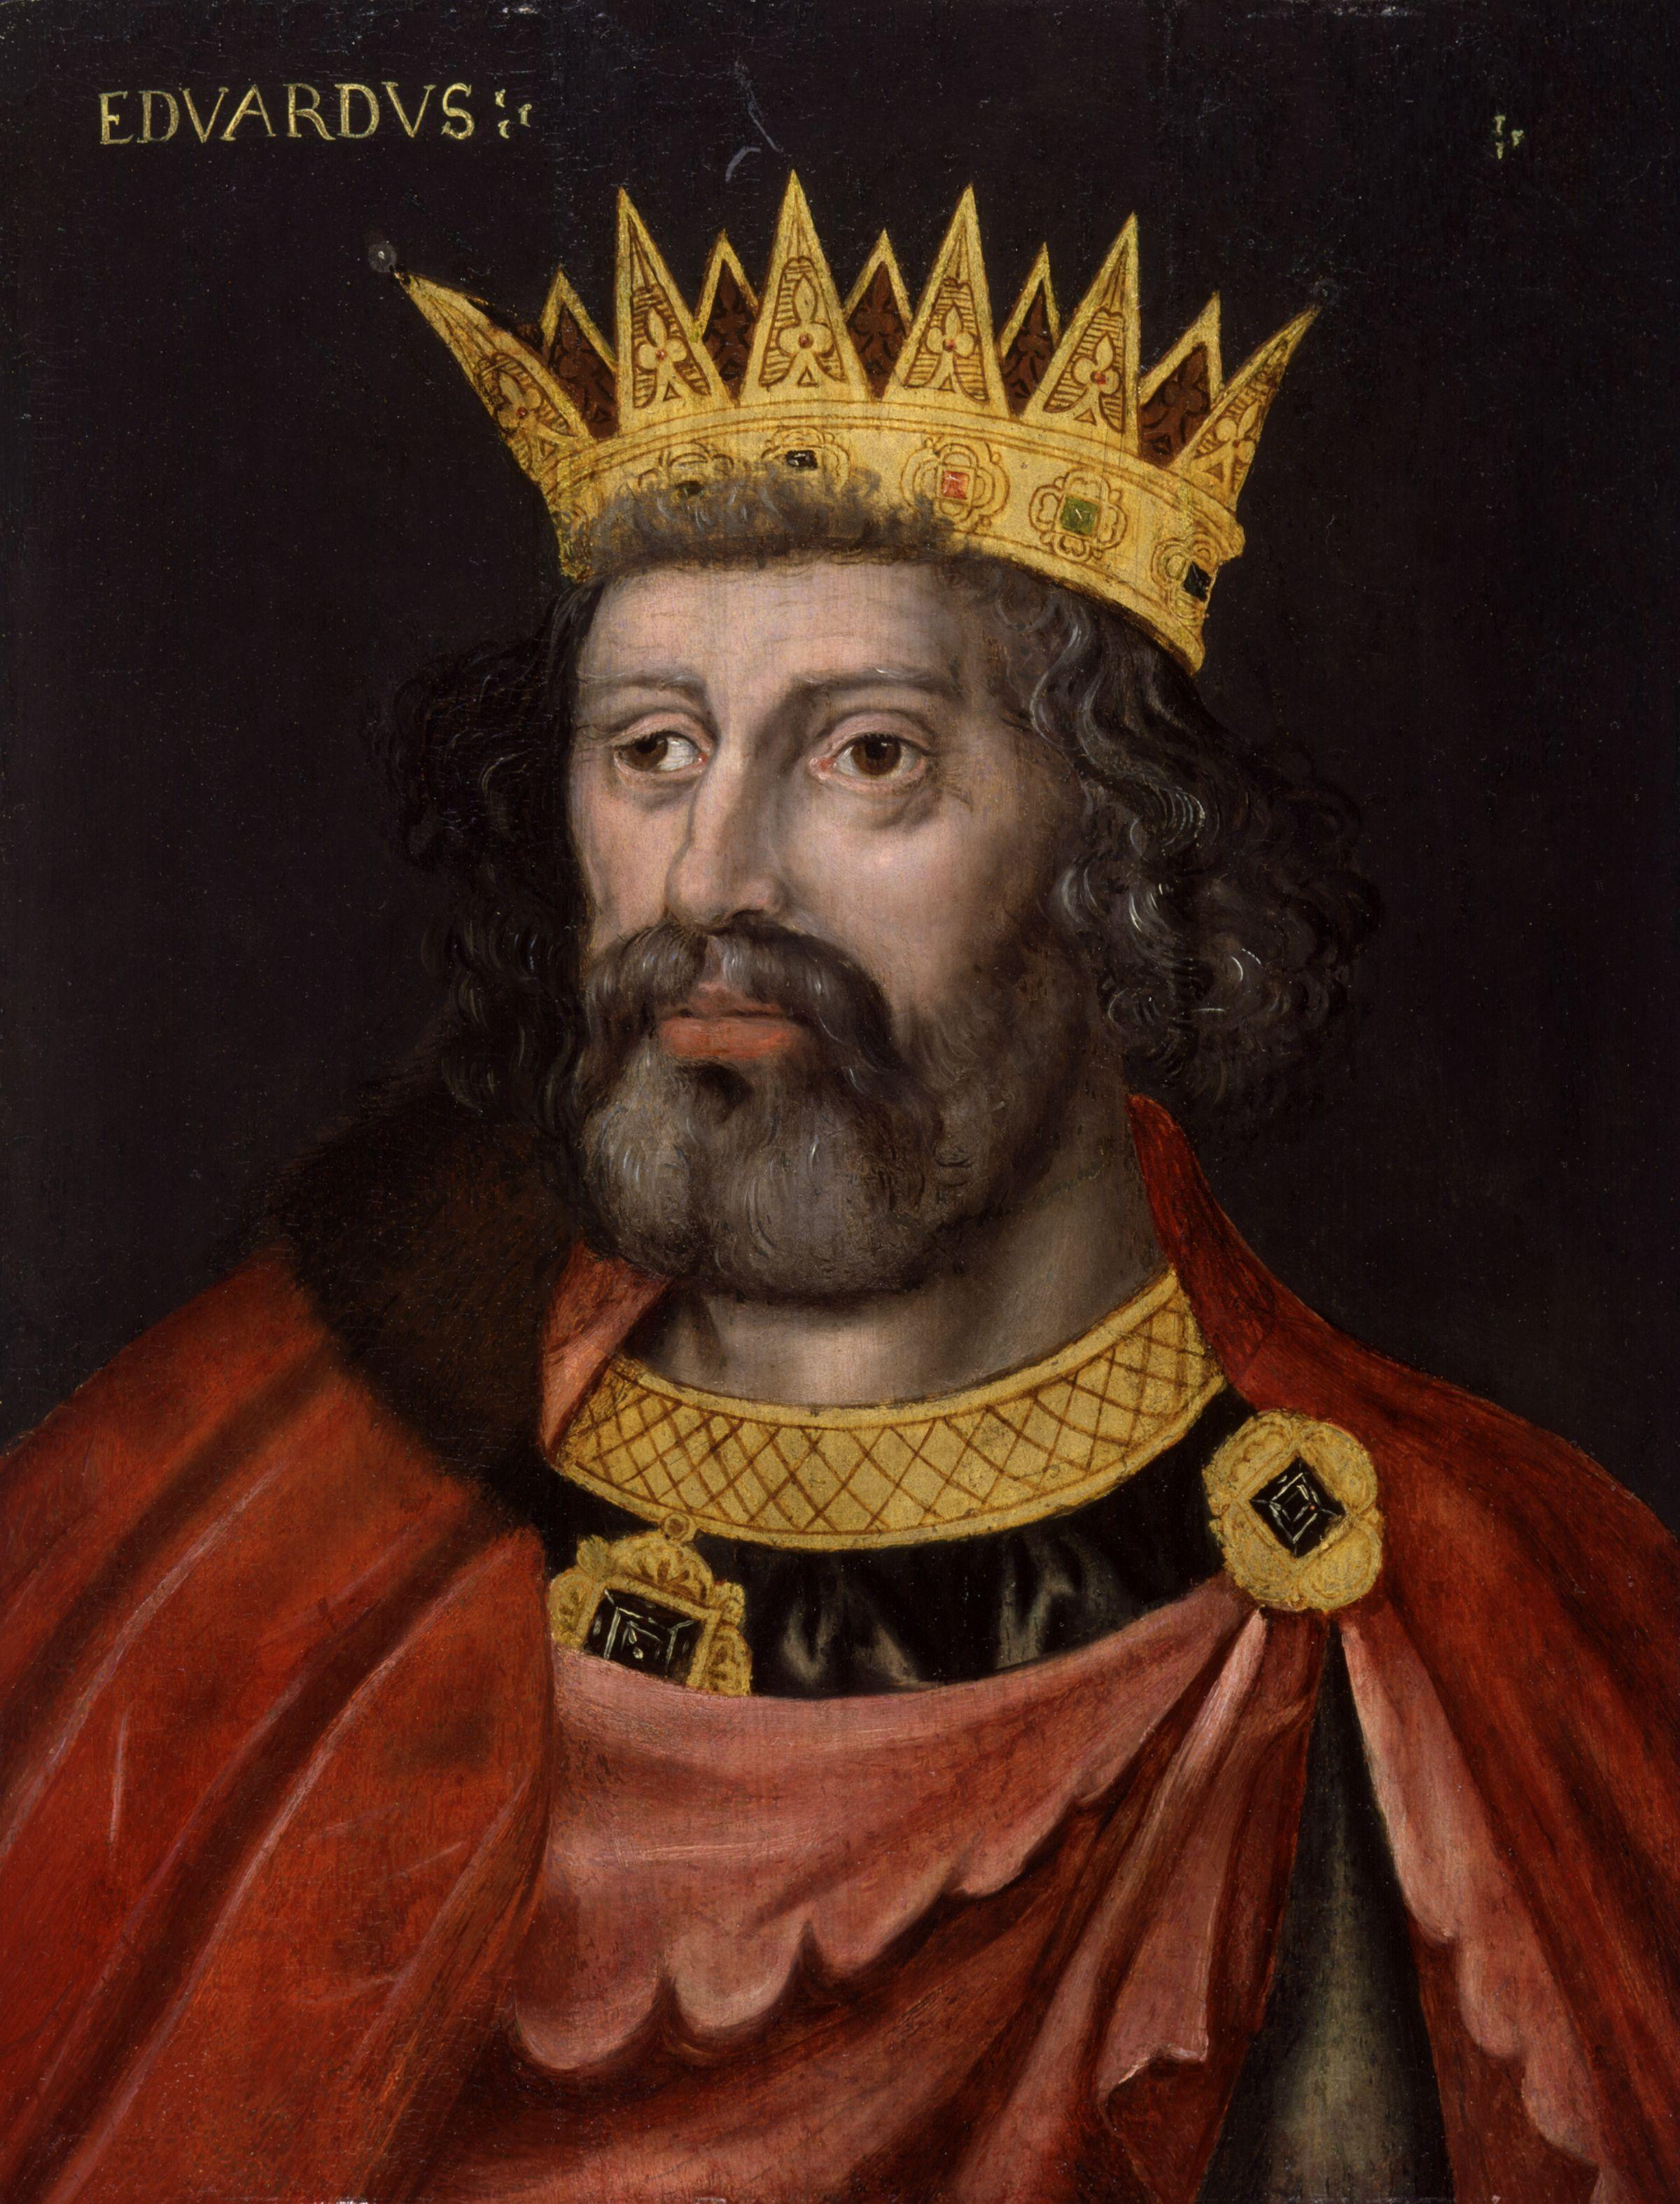 a biography of king henry iii of england 27092018 henry iii: henry iii, king of england from 1216 to 1272 in the 24 years (1234–58) during which he had effective control of the government, he displayed.